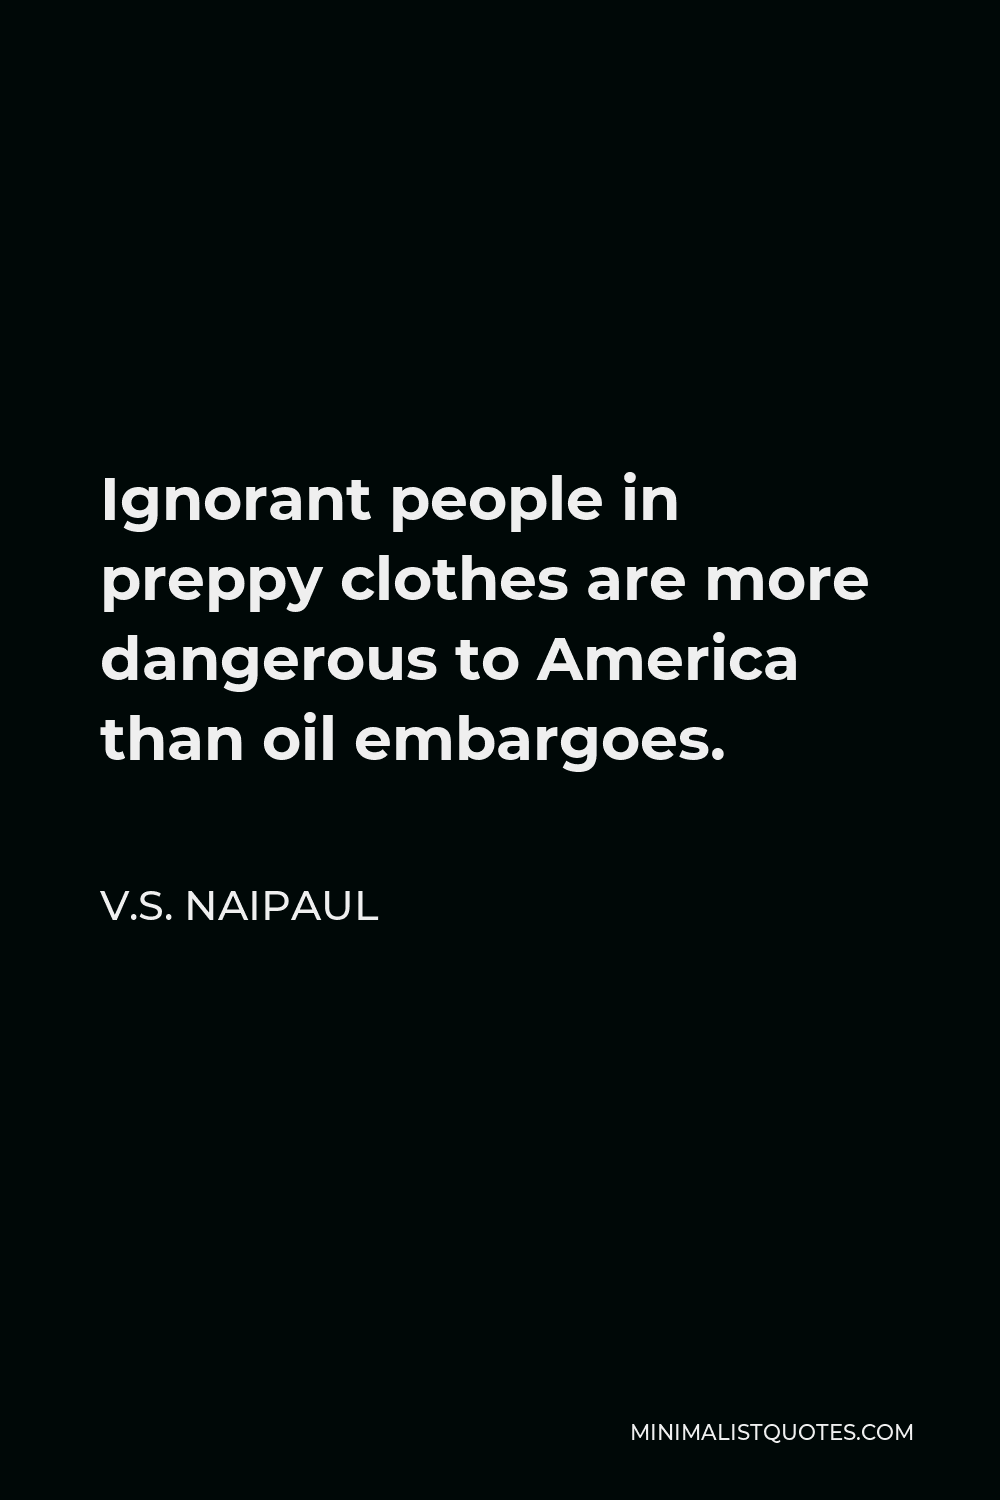 V.S. Naipaul Quote - Ignorant people in preppy clothes are more dangerous to America than oil embargoes.